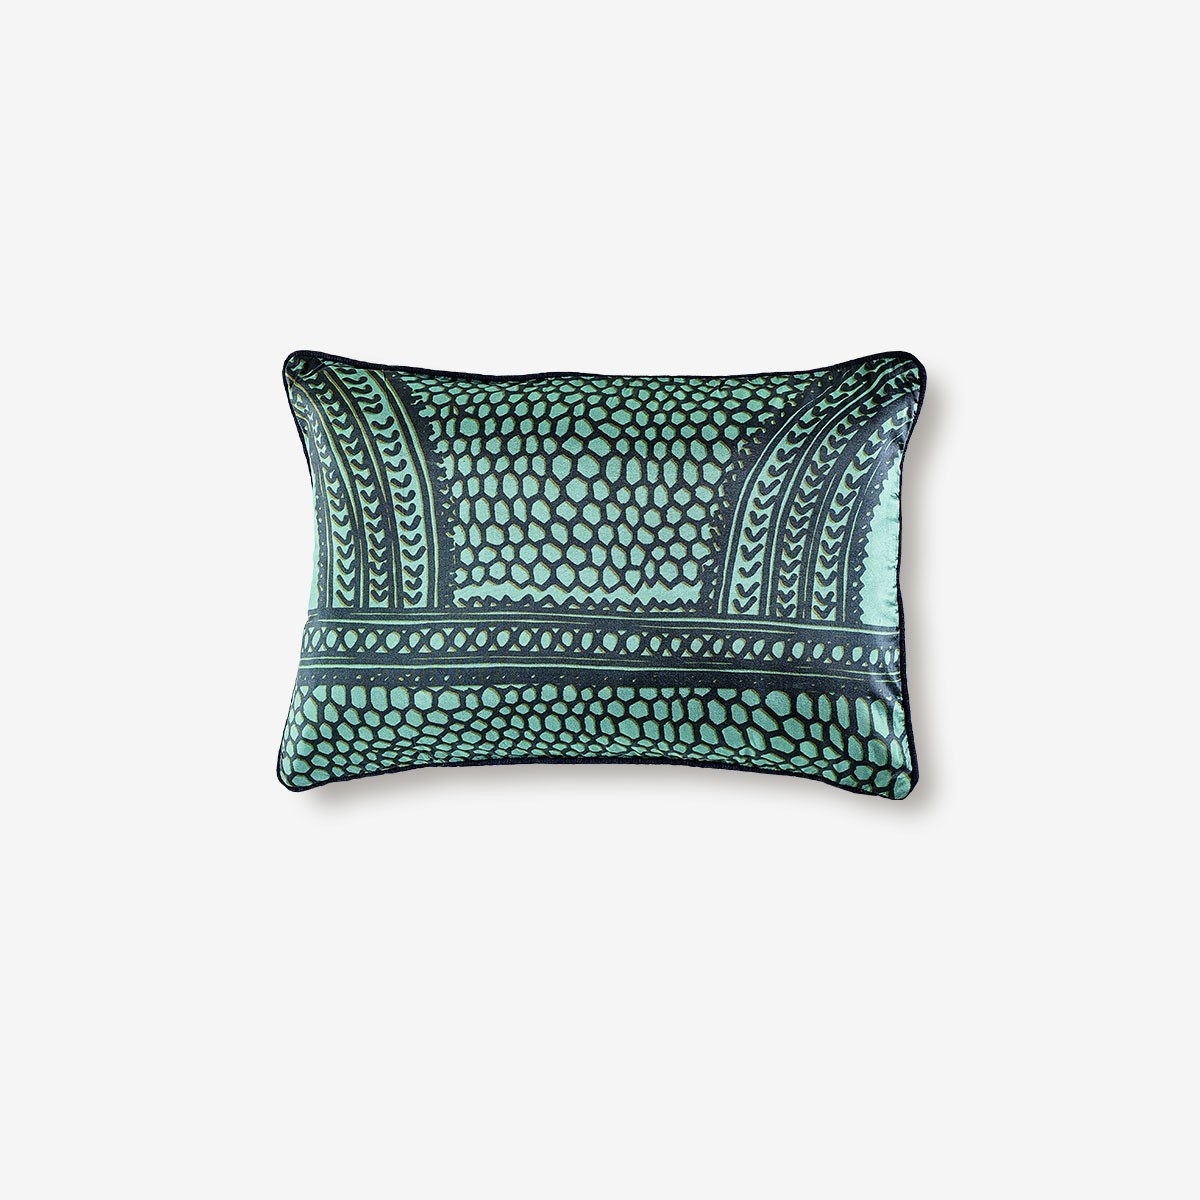 Image shows Bridget Cushion in Aqua